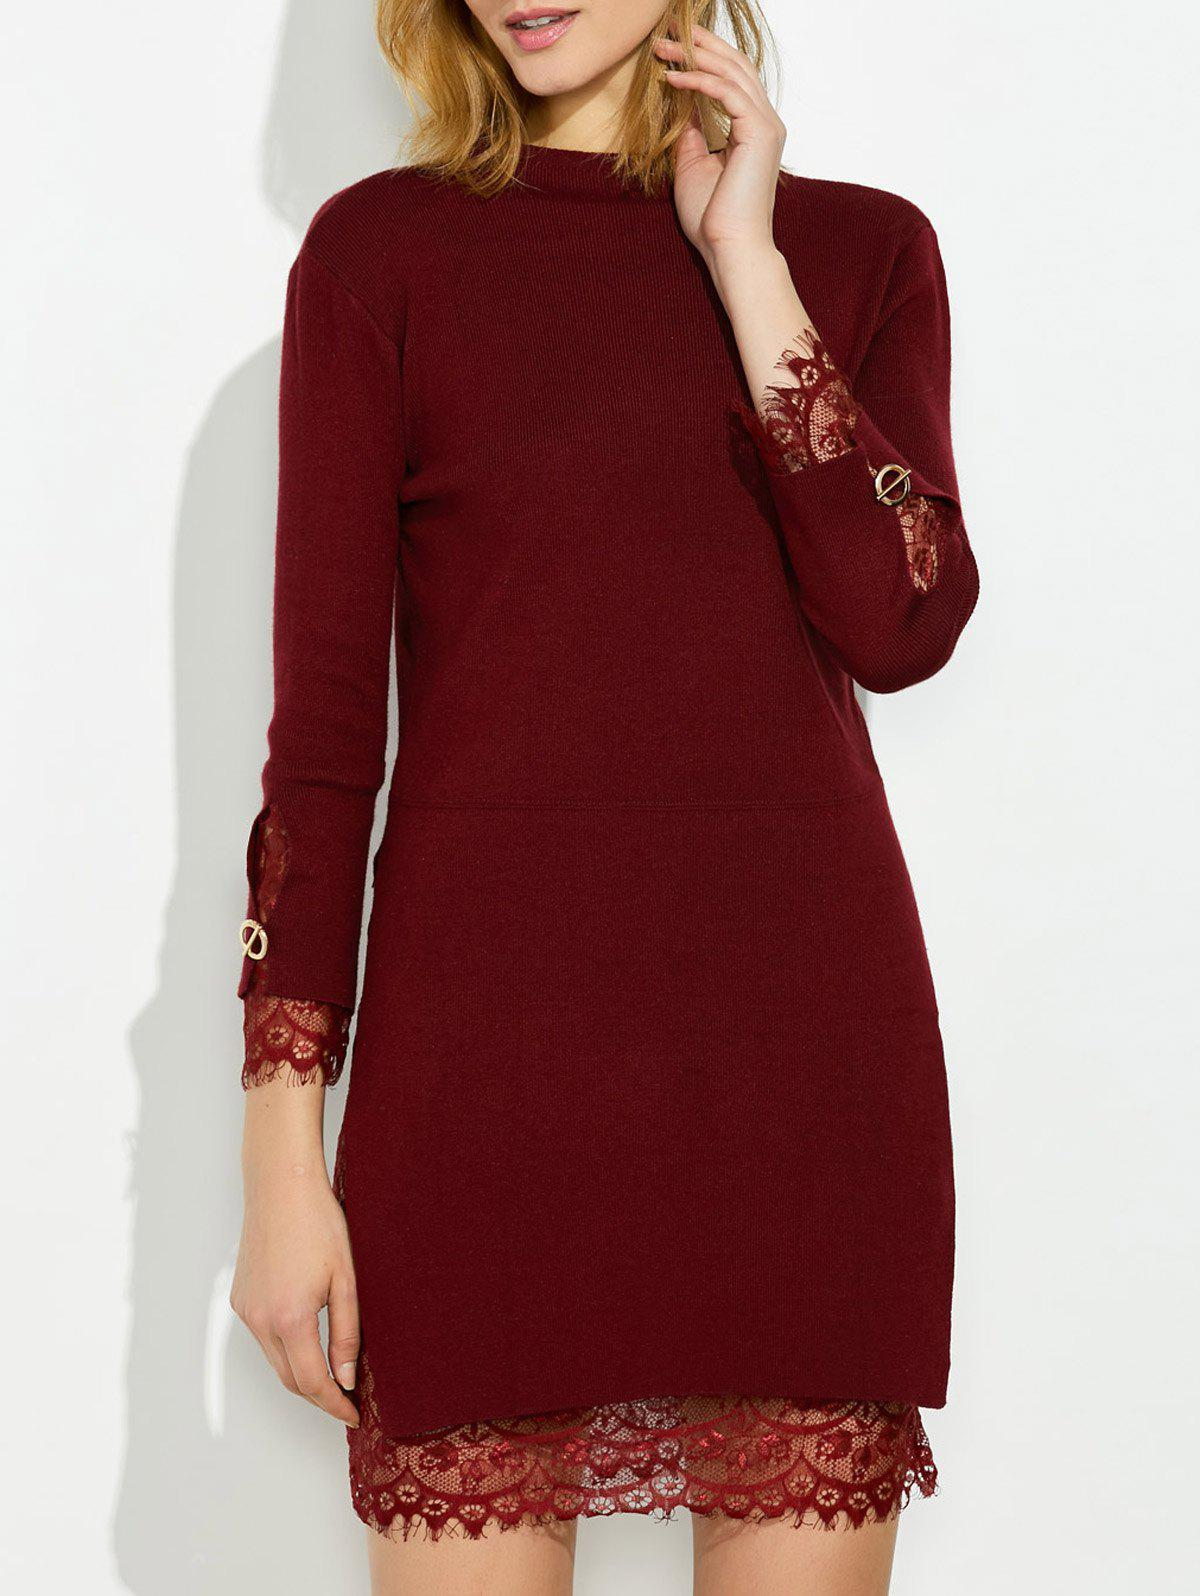 Mock Neck Knitted Layered Sweater Dress With Lace Trim mock neck allover pattern dress